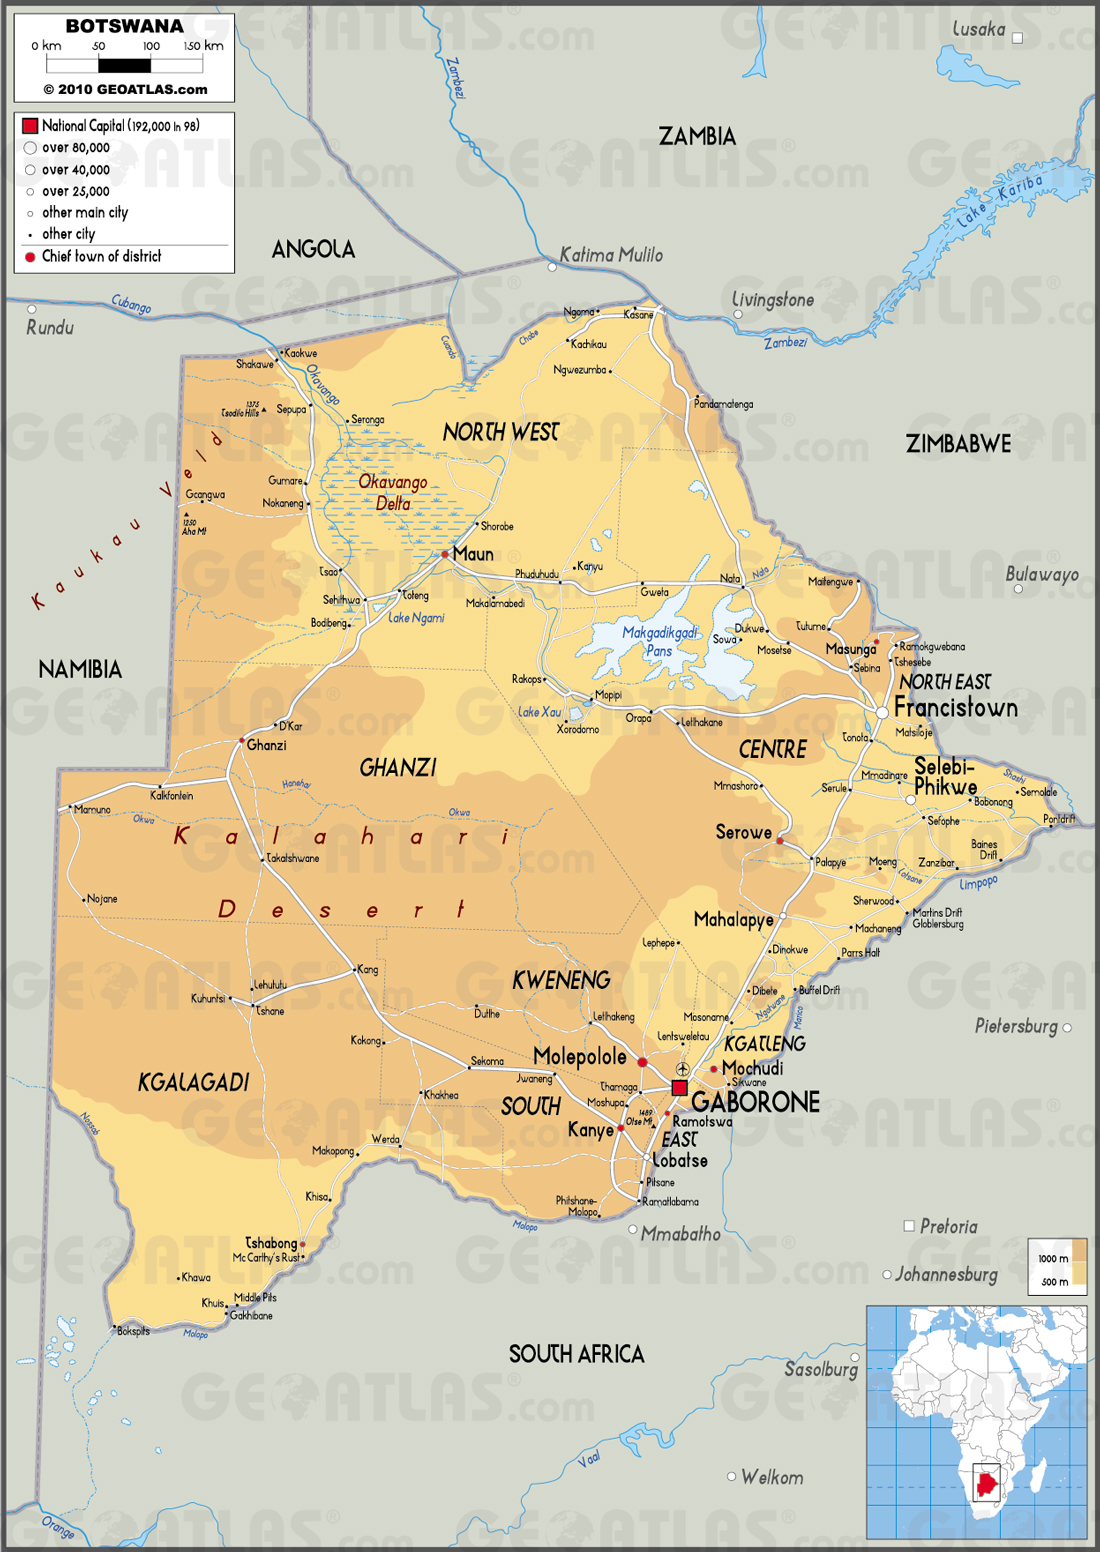 political map of angola with File Botswana Defence Force  U S  Conducts Joint Military Exercise  7629109996 on File Normandy in France 2016 besides Carte Angola also Namibia in addition Branches furthermore Water Reservoirs Namibia Water Tanks.